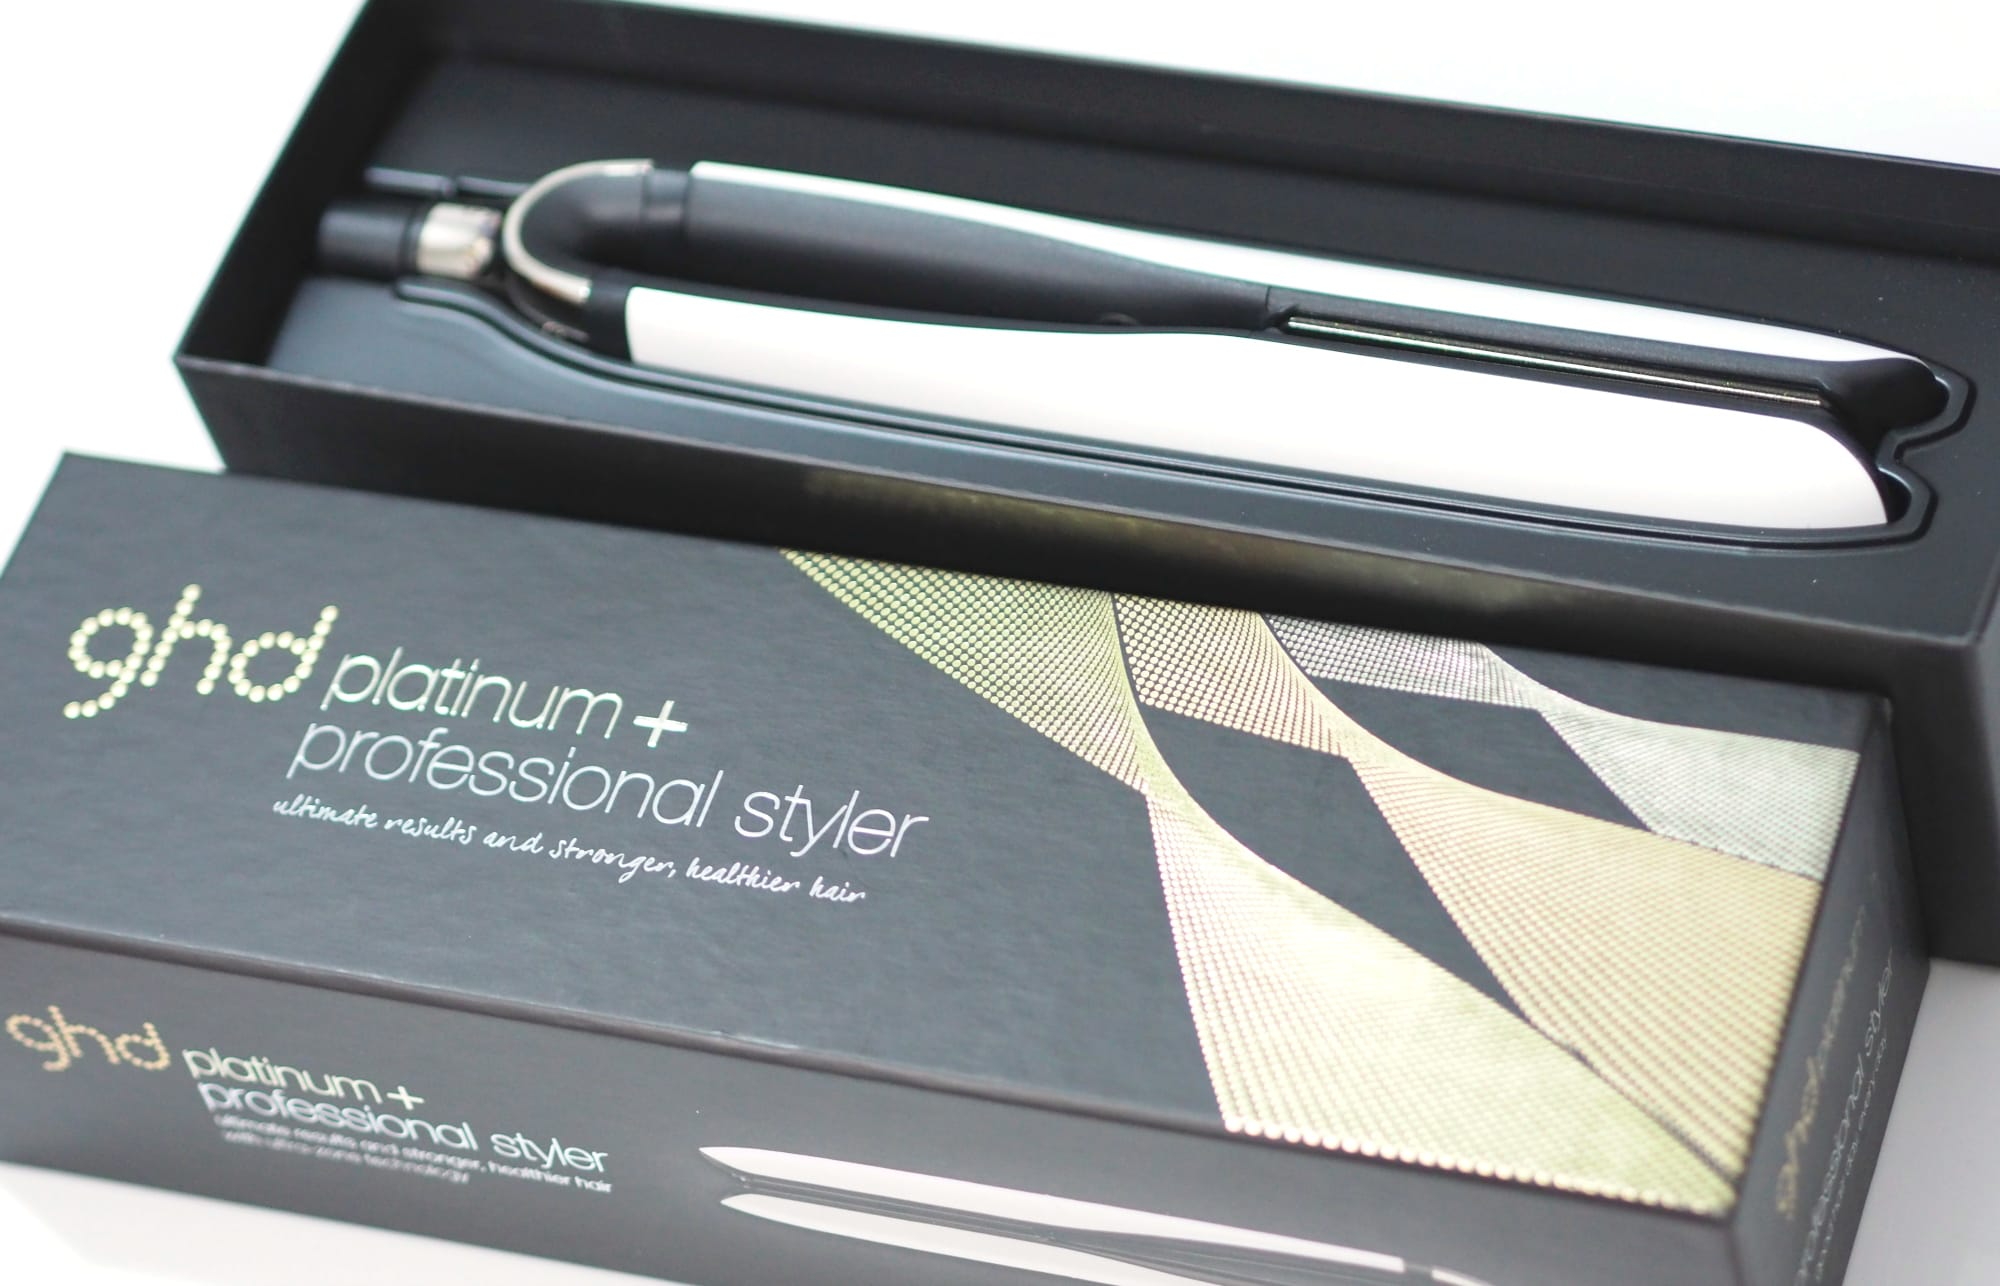 Review of the NEW ghd Platinum + Styler Hair Straighteners in white